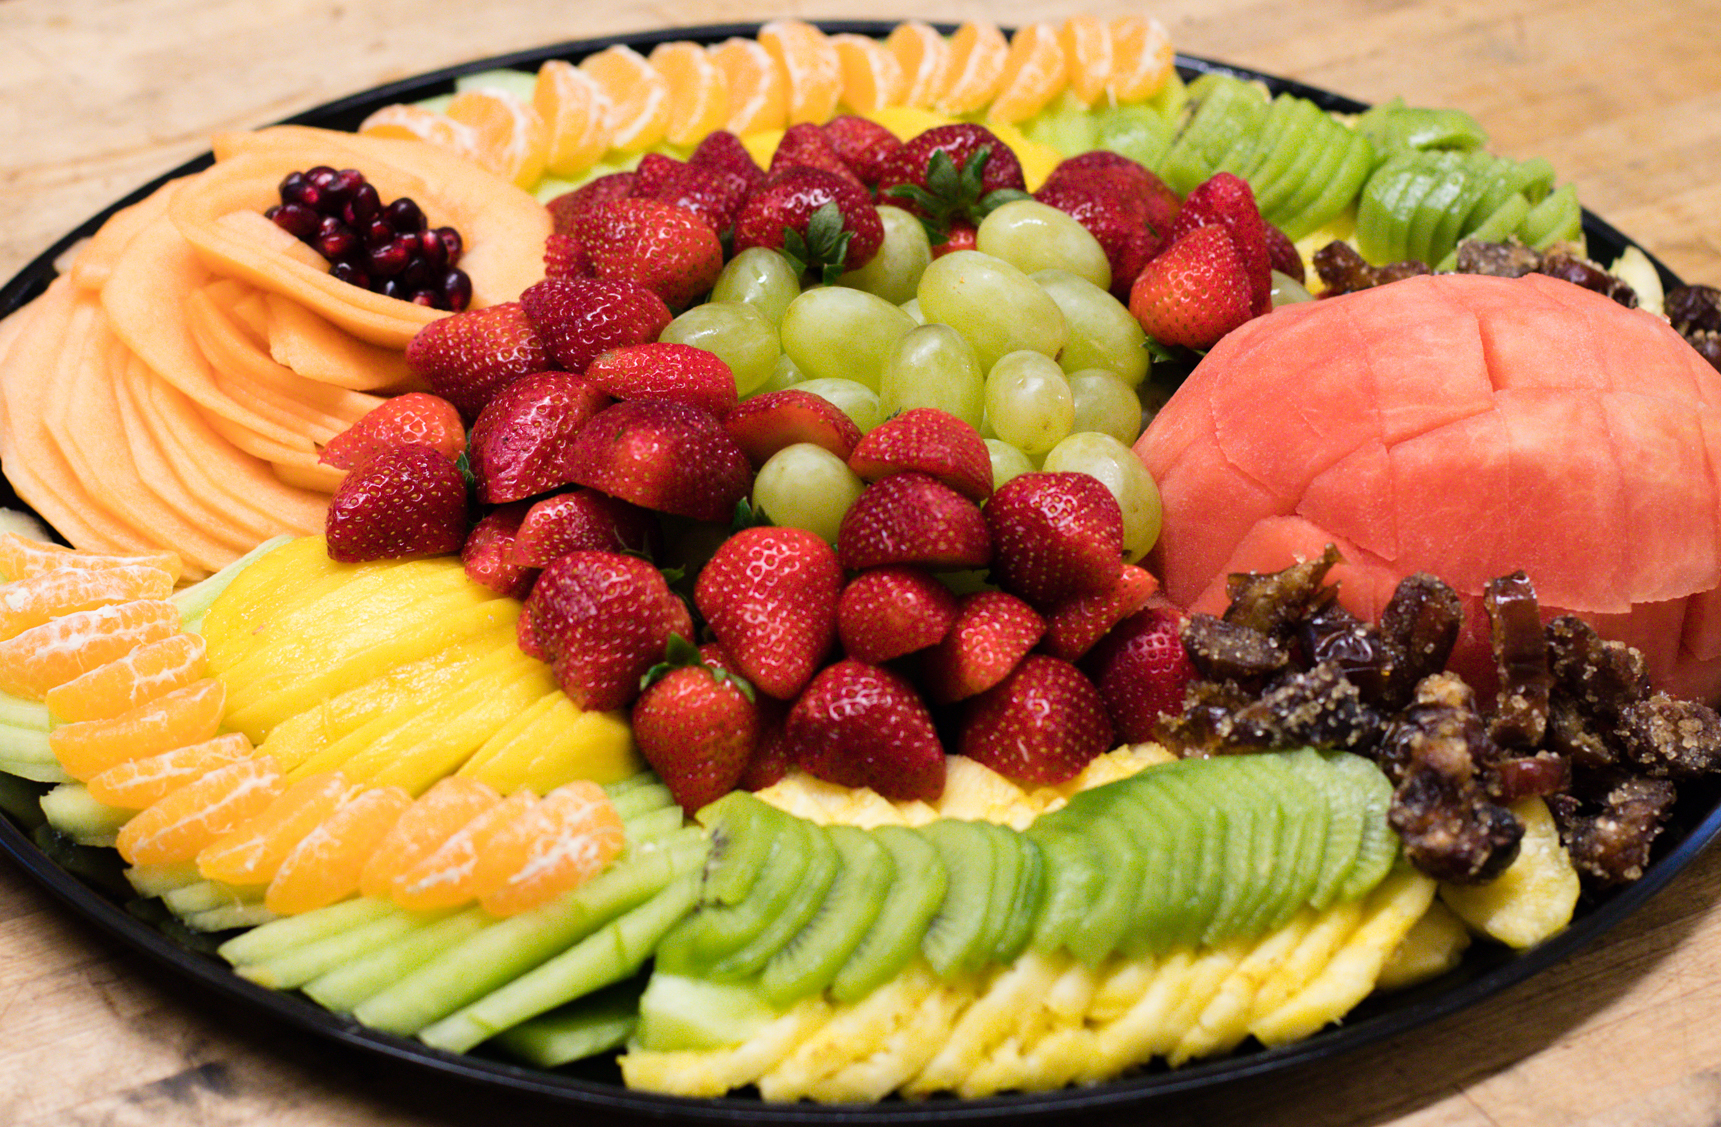 Check out our Beautiful Fruit Trays